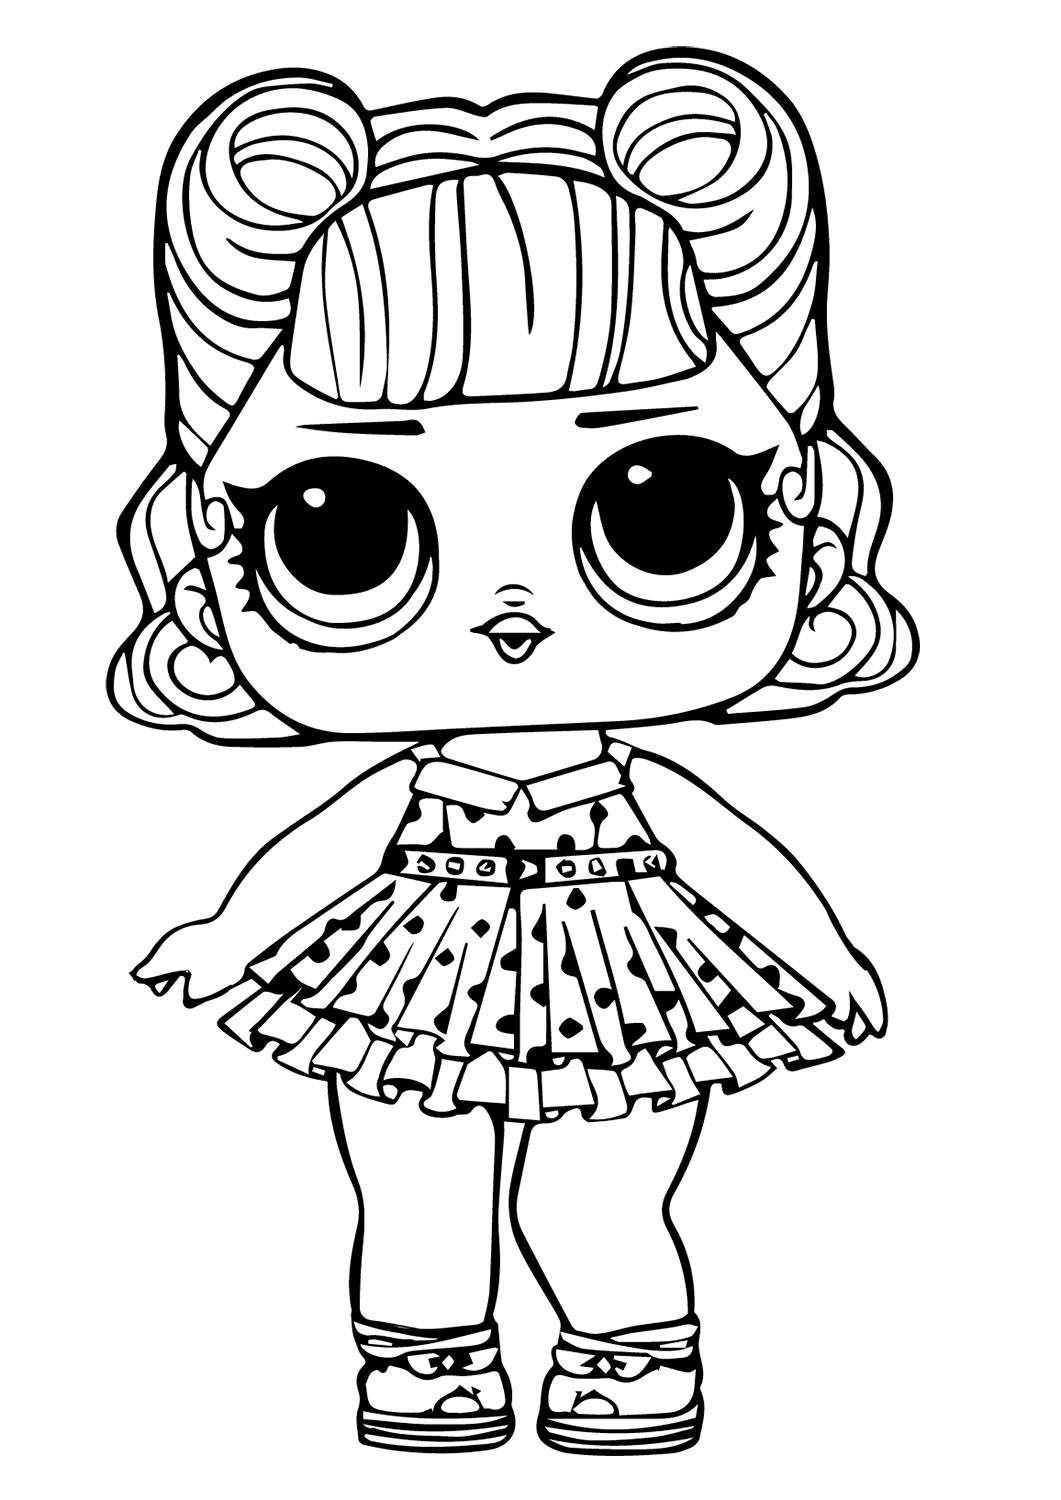 Lol Dolls Coloring Pages Sugar Free Coloring Pages Globalchin Coloring